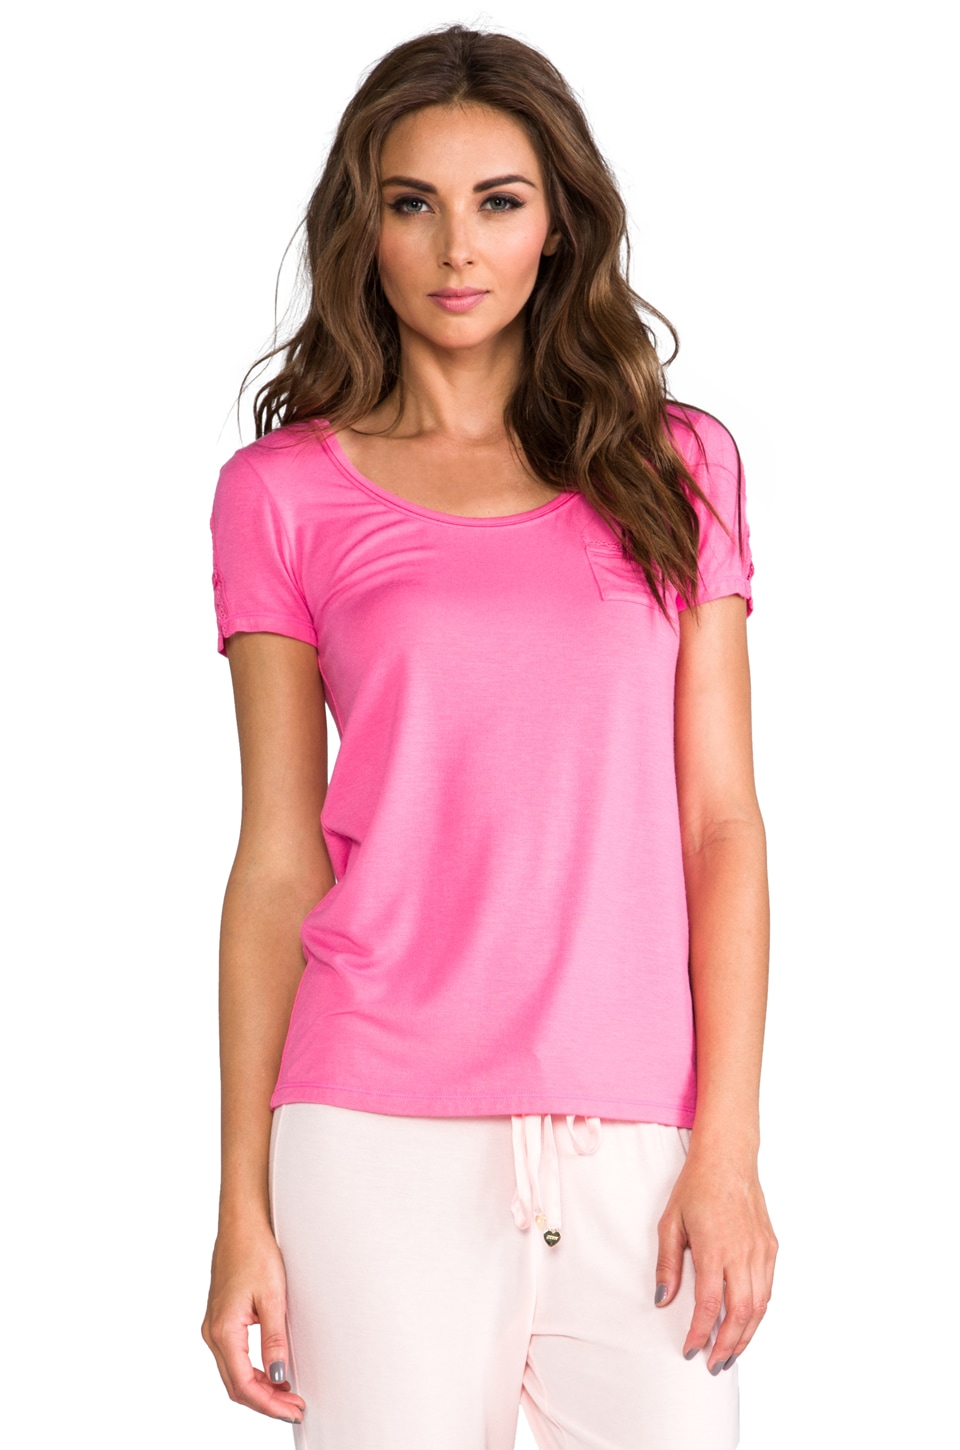 Juicy Couture Modal Tee in Light Helium Pink